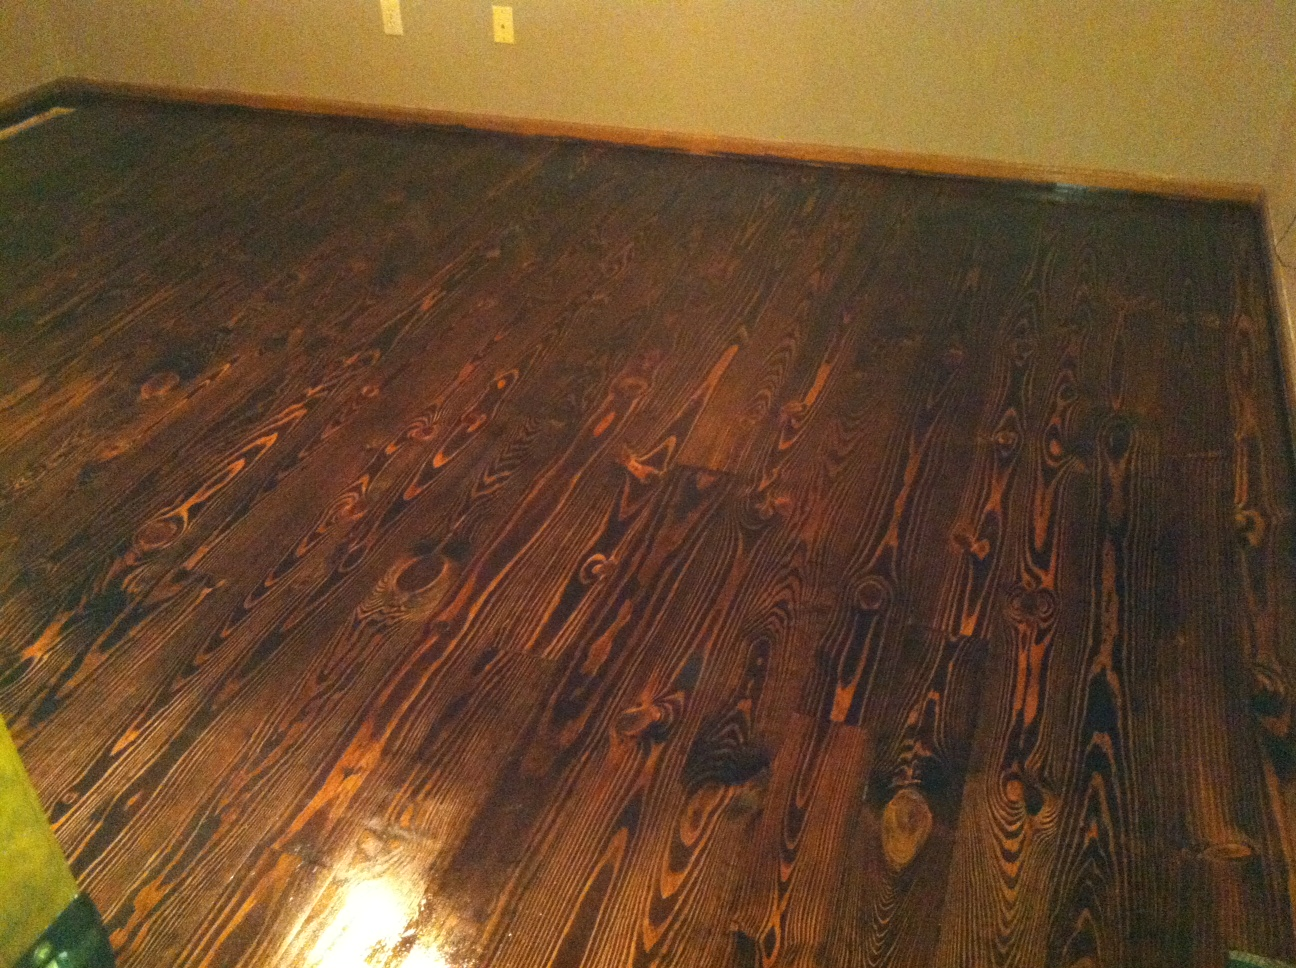 Blue ridge surplus knotty pine flooring part 2 finished for Pine floors stained dark